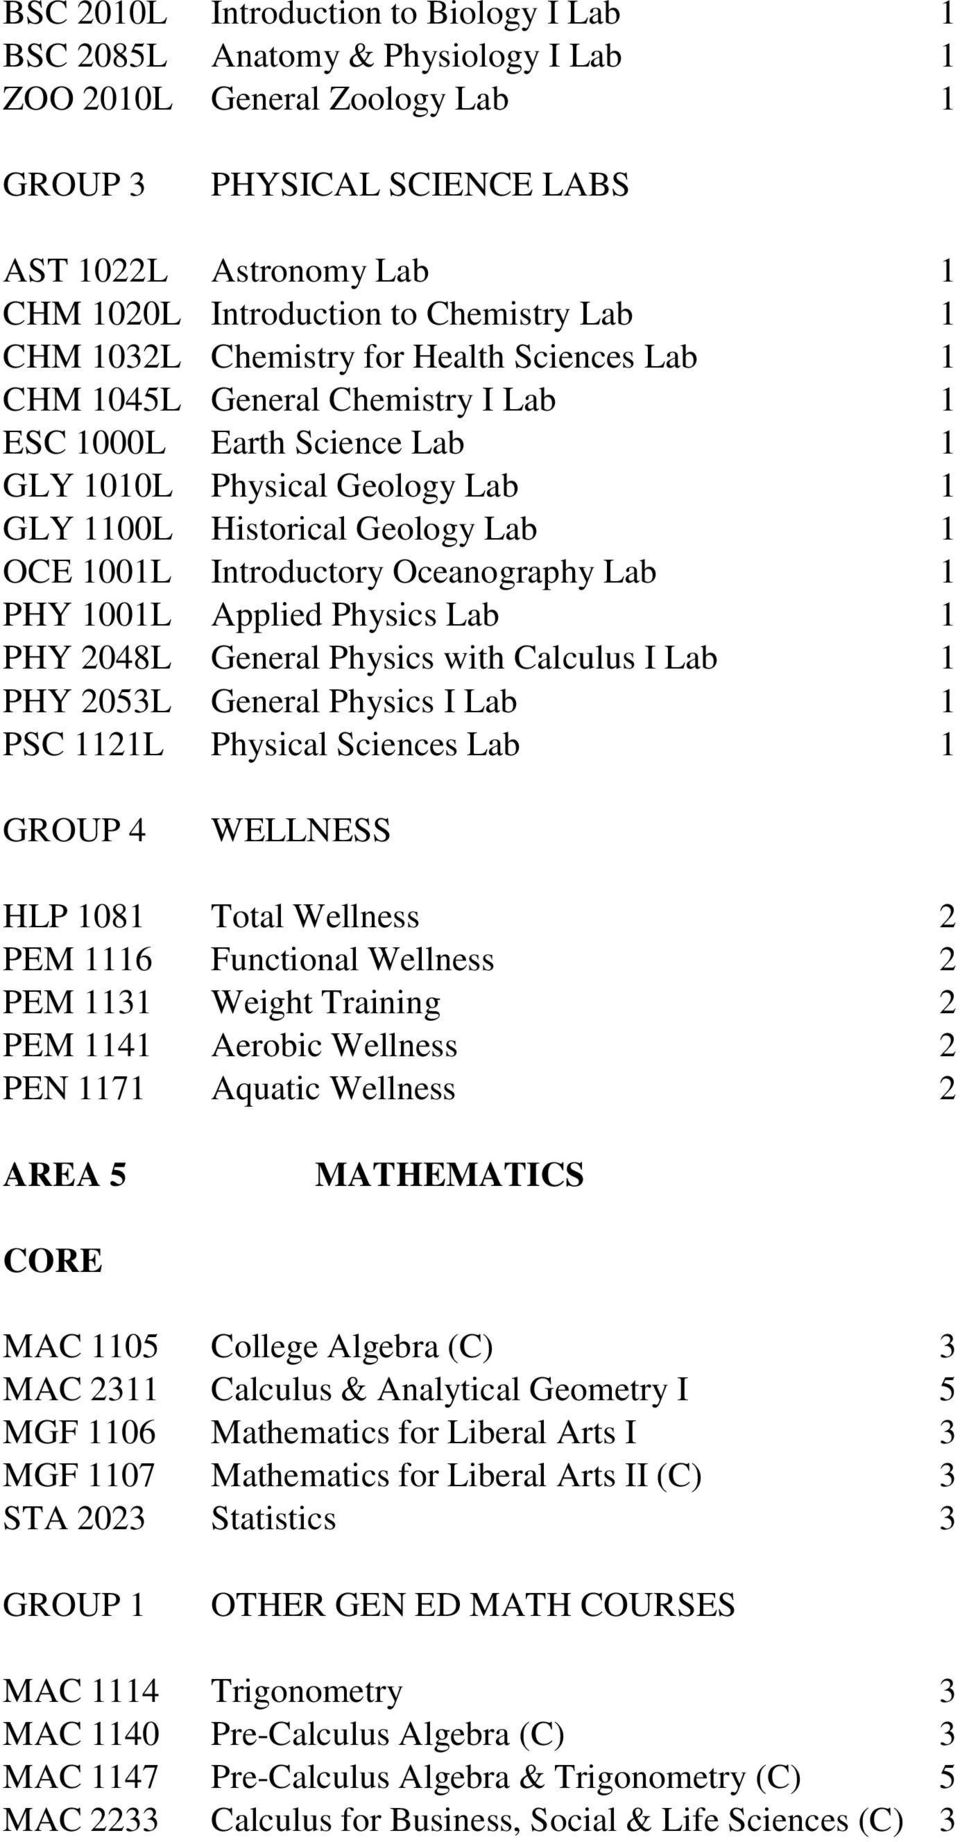 1001L Introductory Oceanography Lab 1 PHY 1001L Applied Physics Lab 1 PHY 2048L General Physics with Calculus I Lab 1 PHY 2053L General Physics I Lab 1 PSC 1121L Physical Sciences Lab 1 GROUP 4